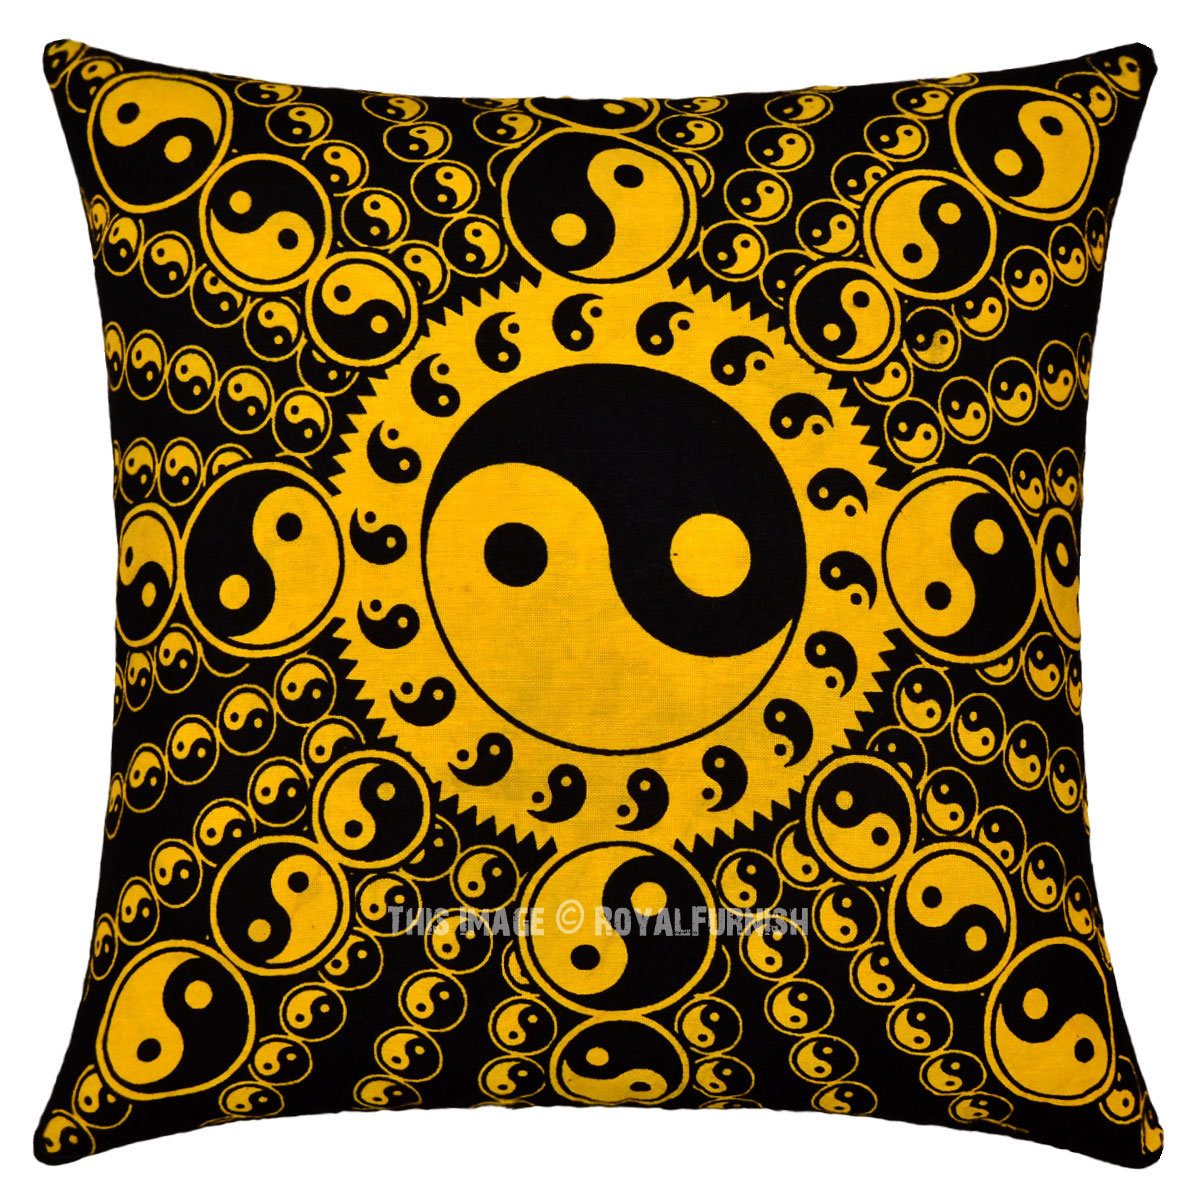 Yellow And Black Decorative Pillows : Yellow and Black Yin Yang Decorative Tie Dye Pillow Cover 16X16 - RoyalFurnish.com